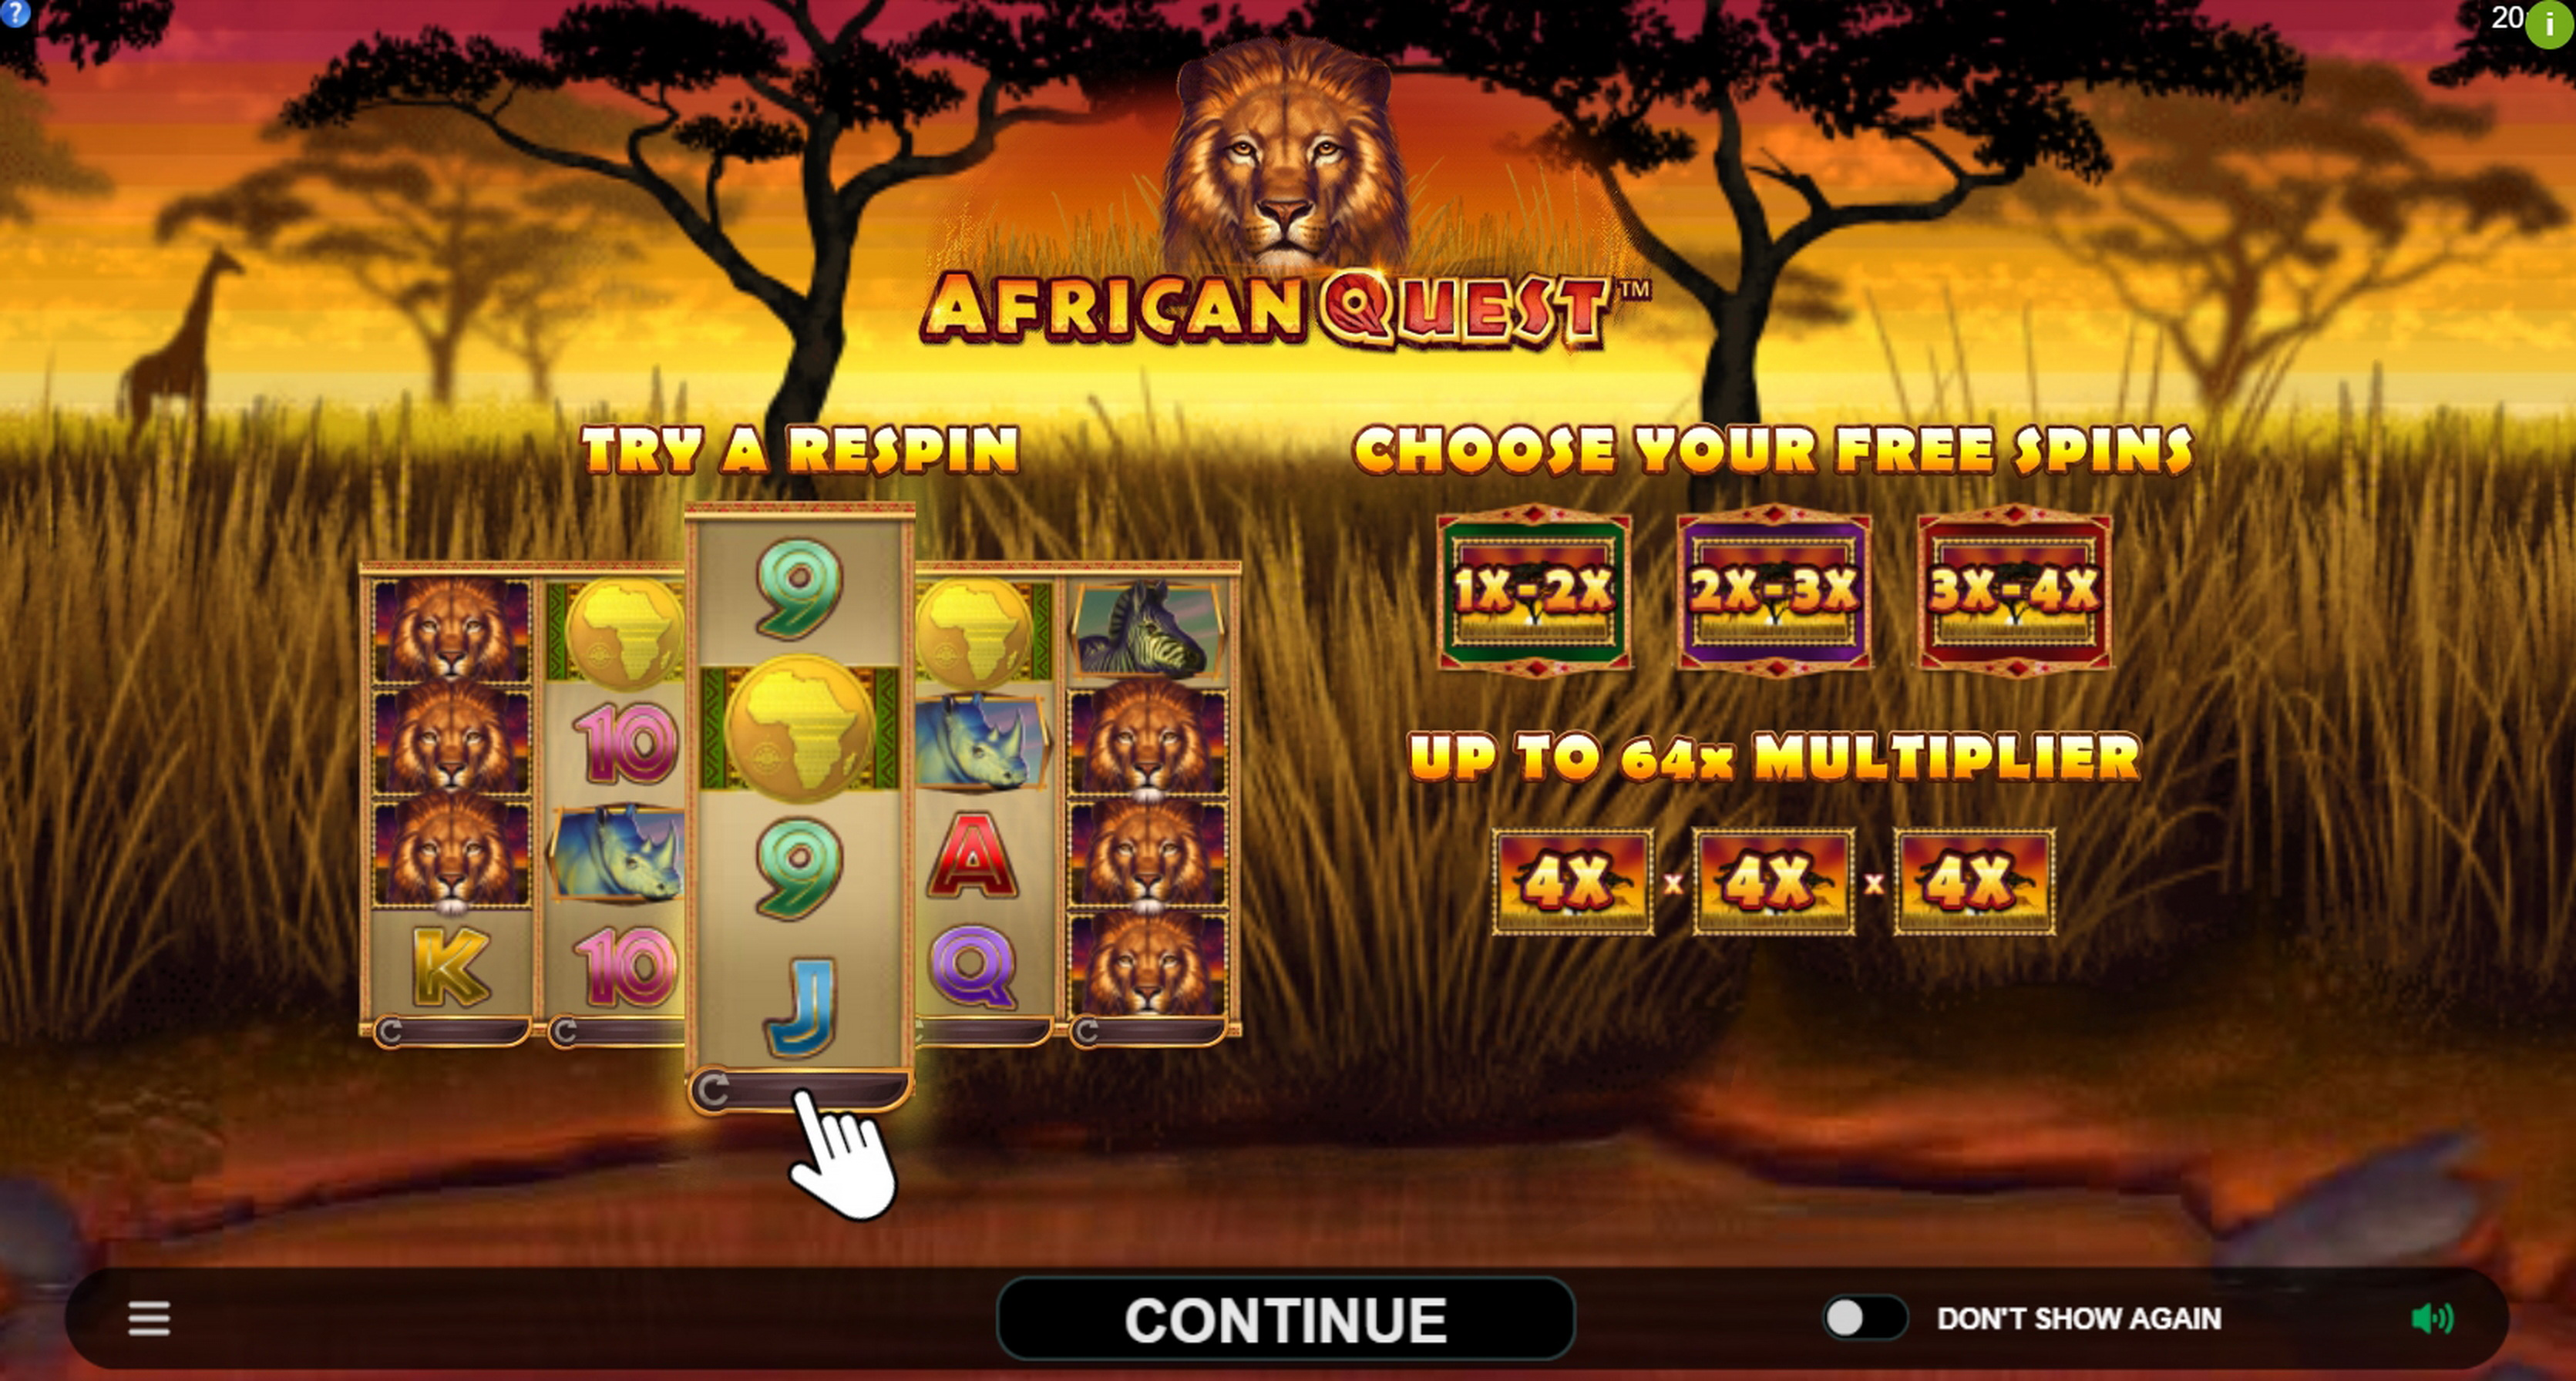 Play African Quest Free Casino Slot Game by Triple Edge Studios